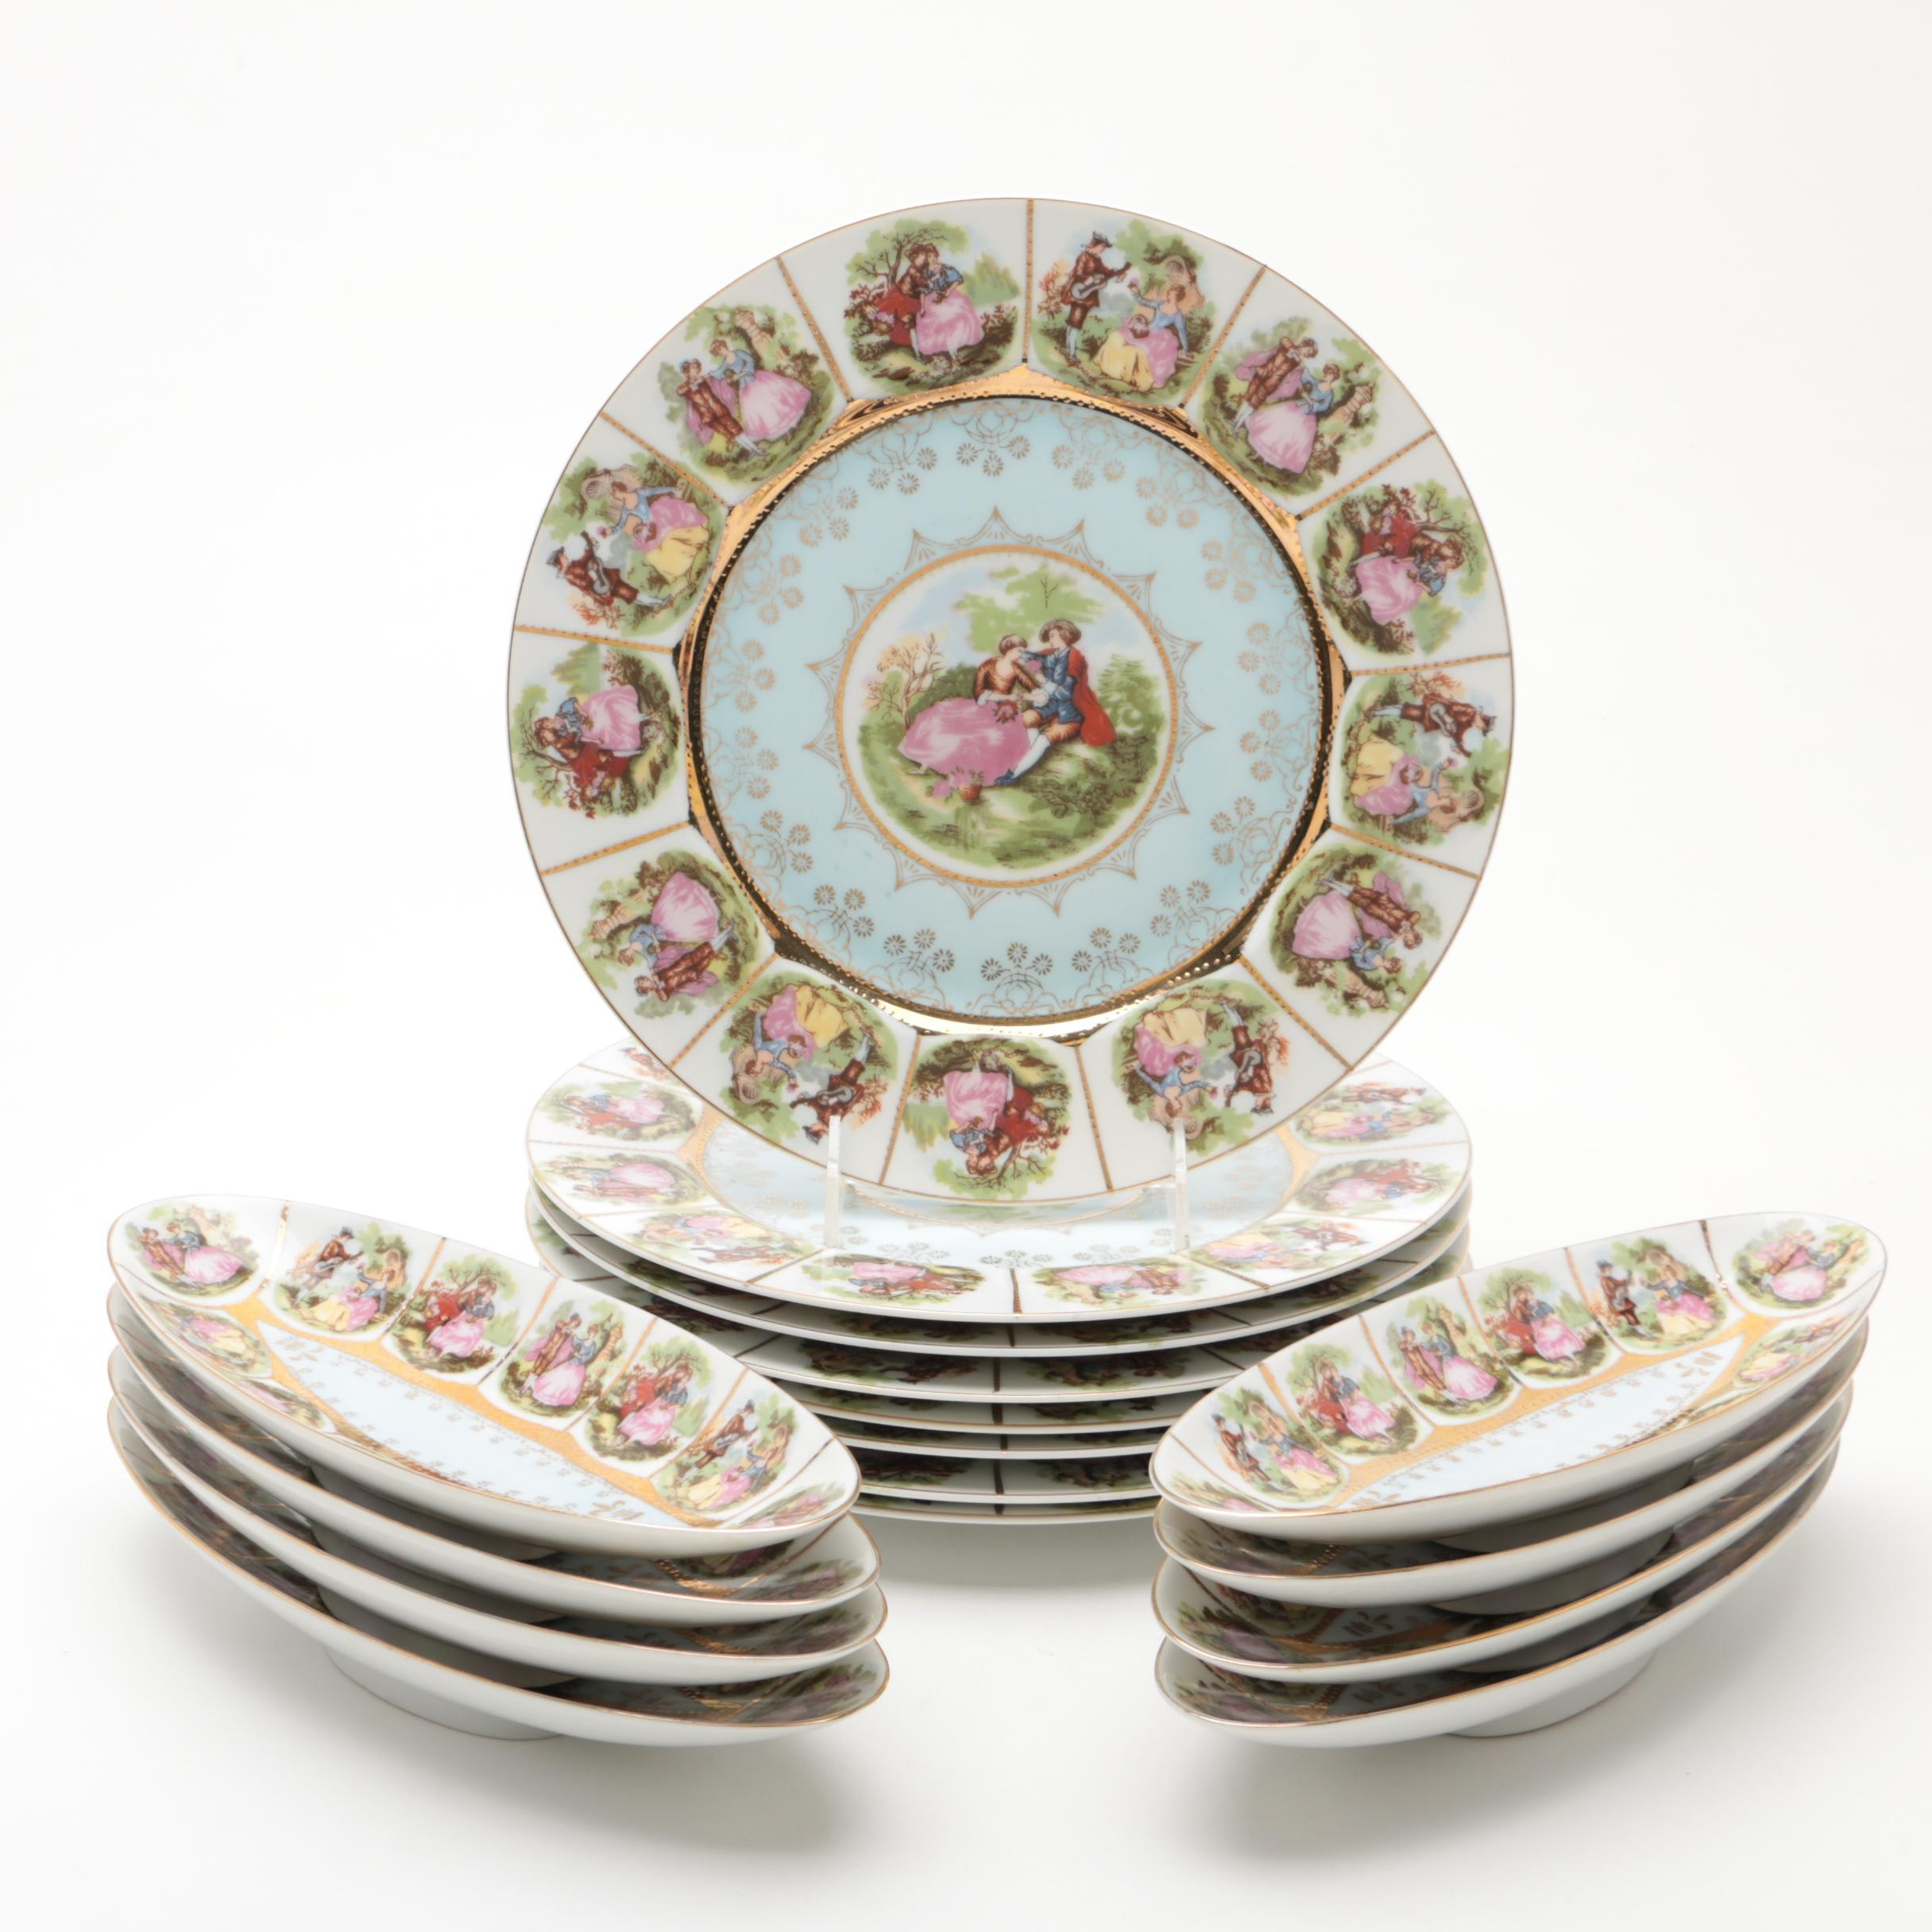 Vintage Provincial Romantic Scene Porcelain Plates and Footed Oval Bowls